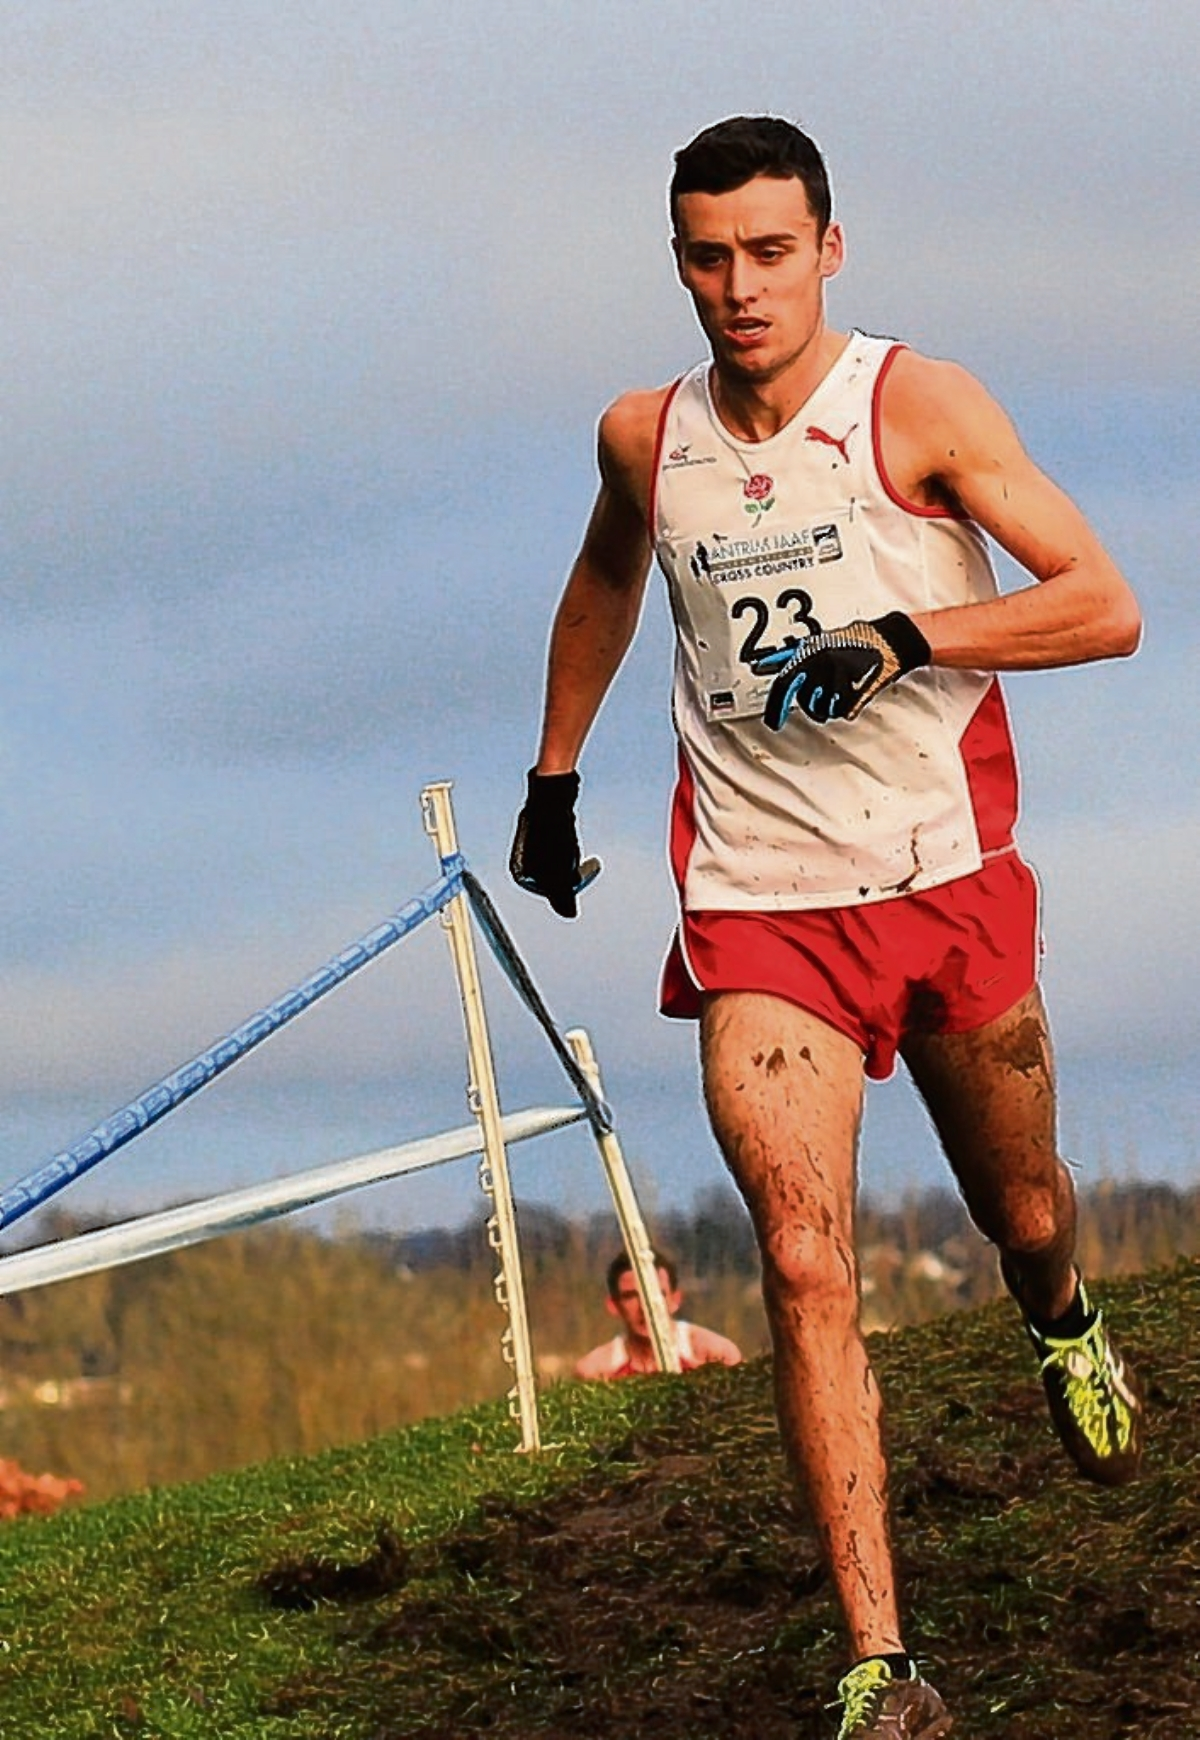 Adam Hickey in Antrim (pic courtesy of nirunning.co.uk)